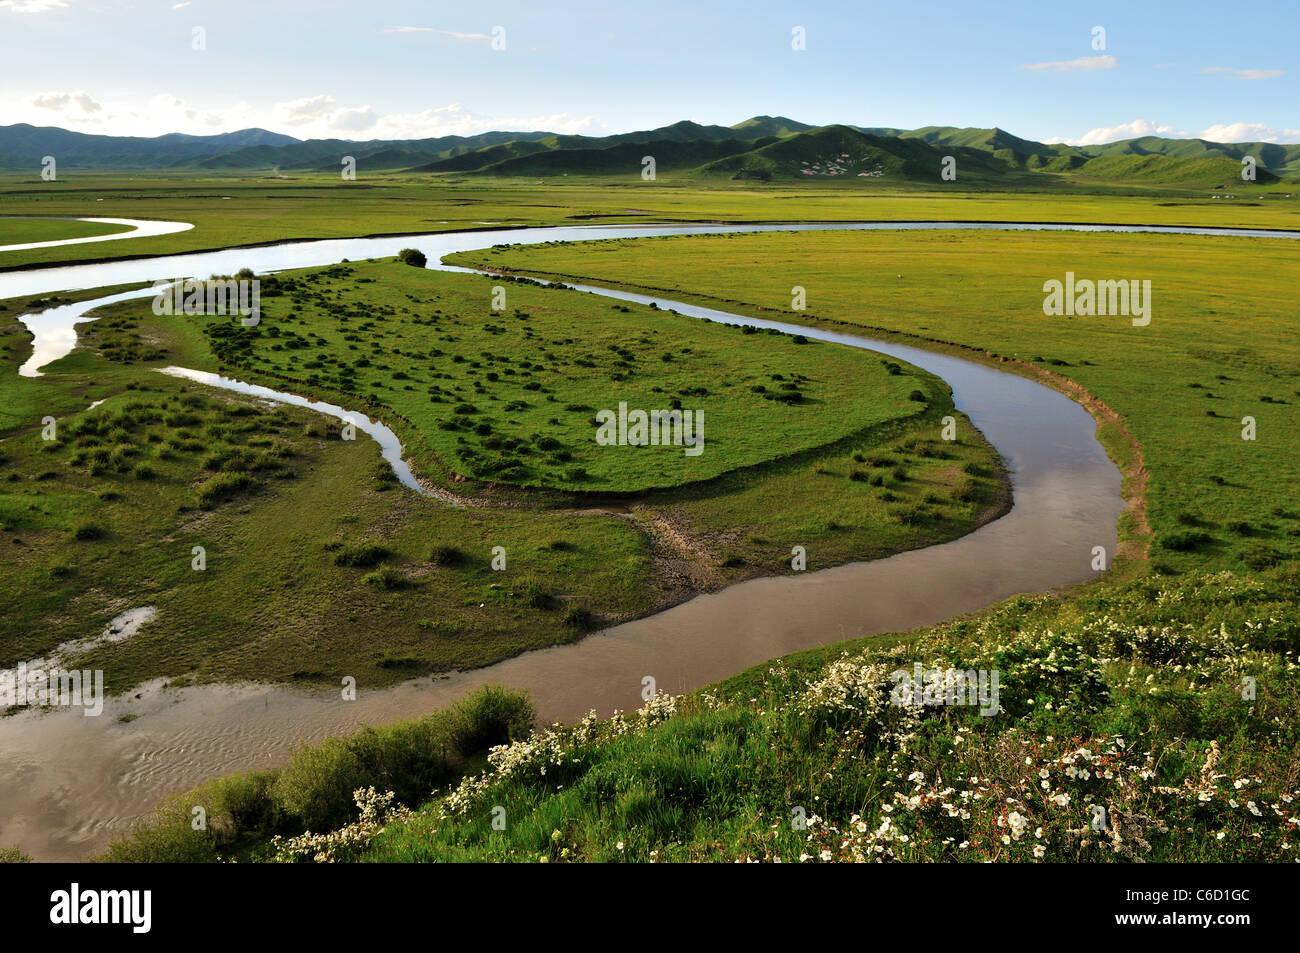 An oxbow lake along the meandering river channel. Hongyuen, Sichuan, China. - Stock Image